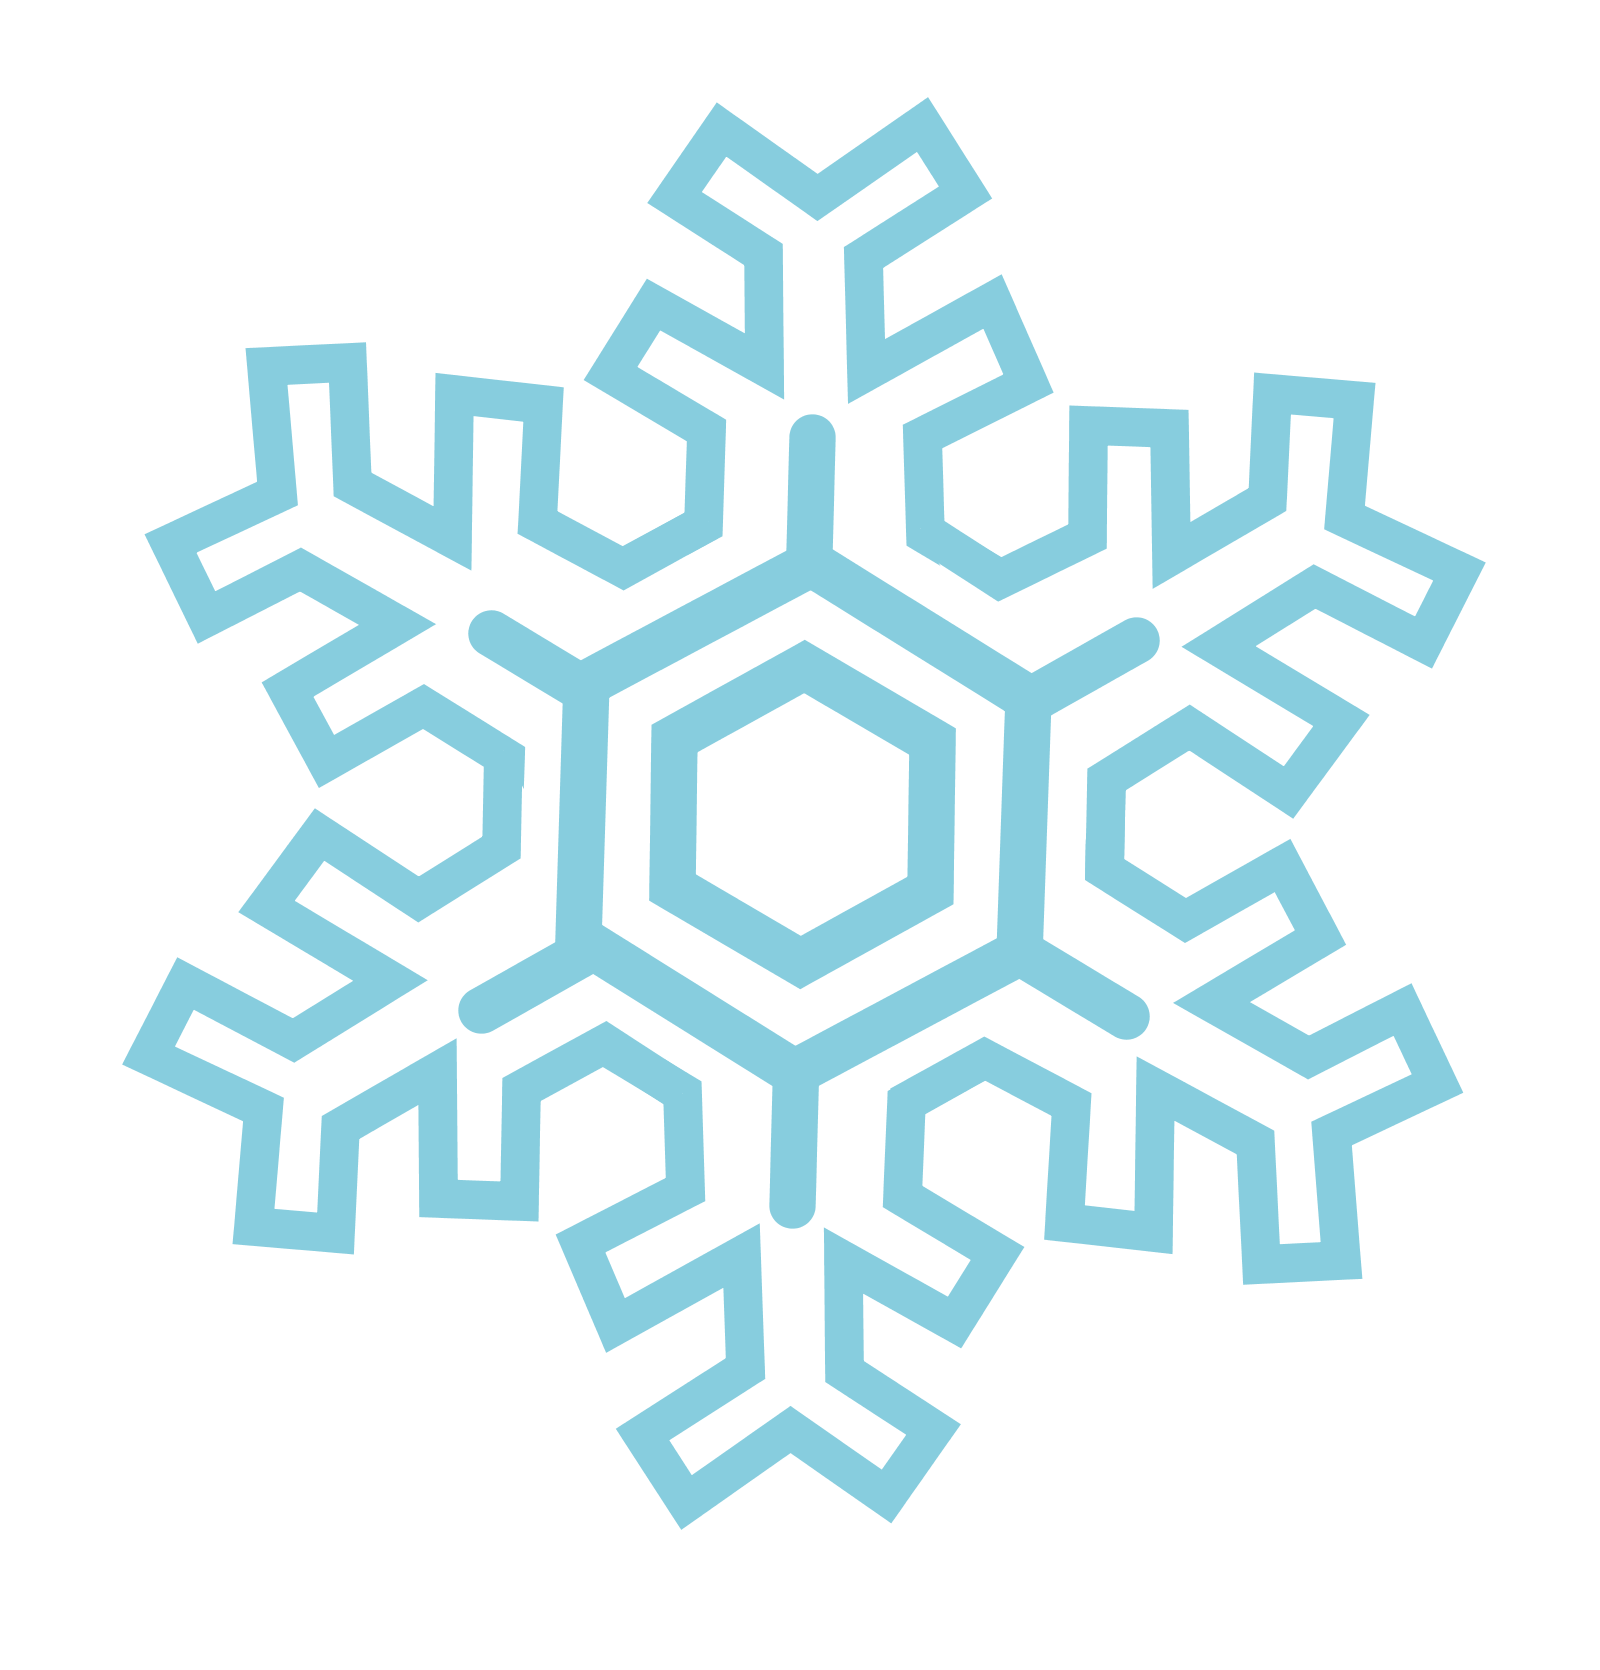 Fancy snowflake free clipart image black and white stock Snowflakes PNG images free download, snowflake PNG image black and white stock